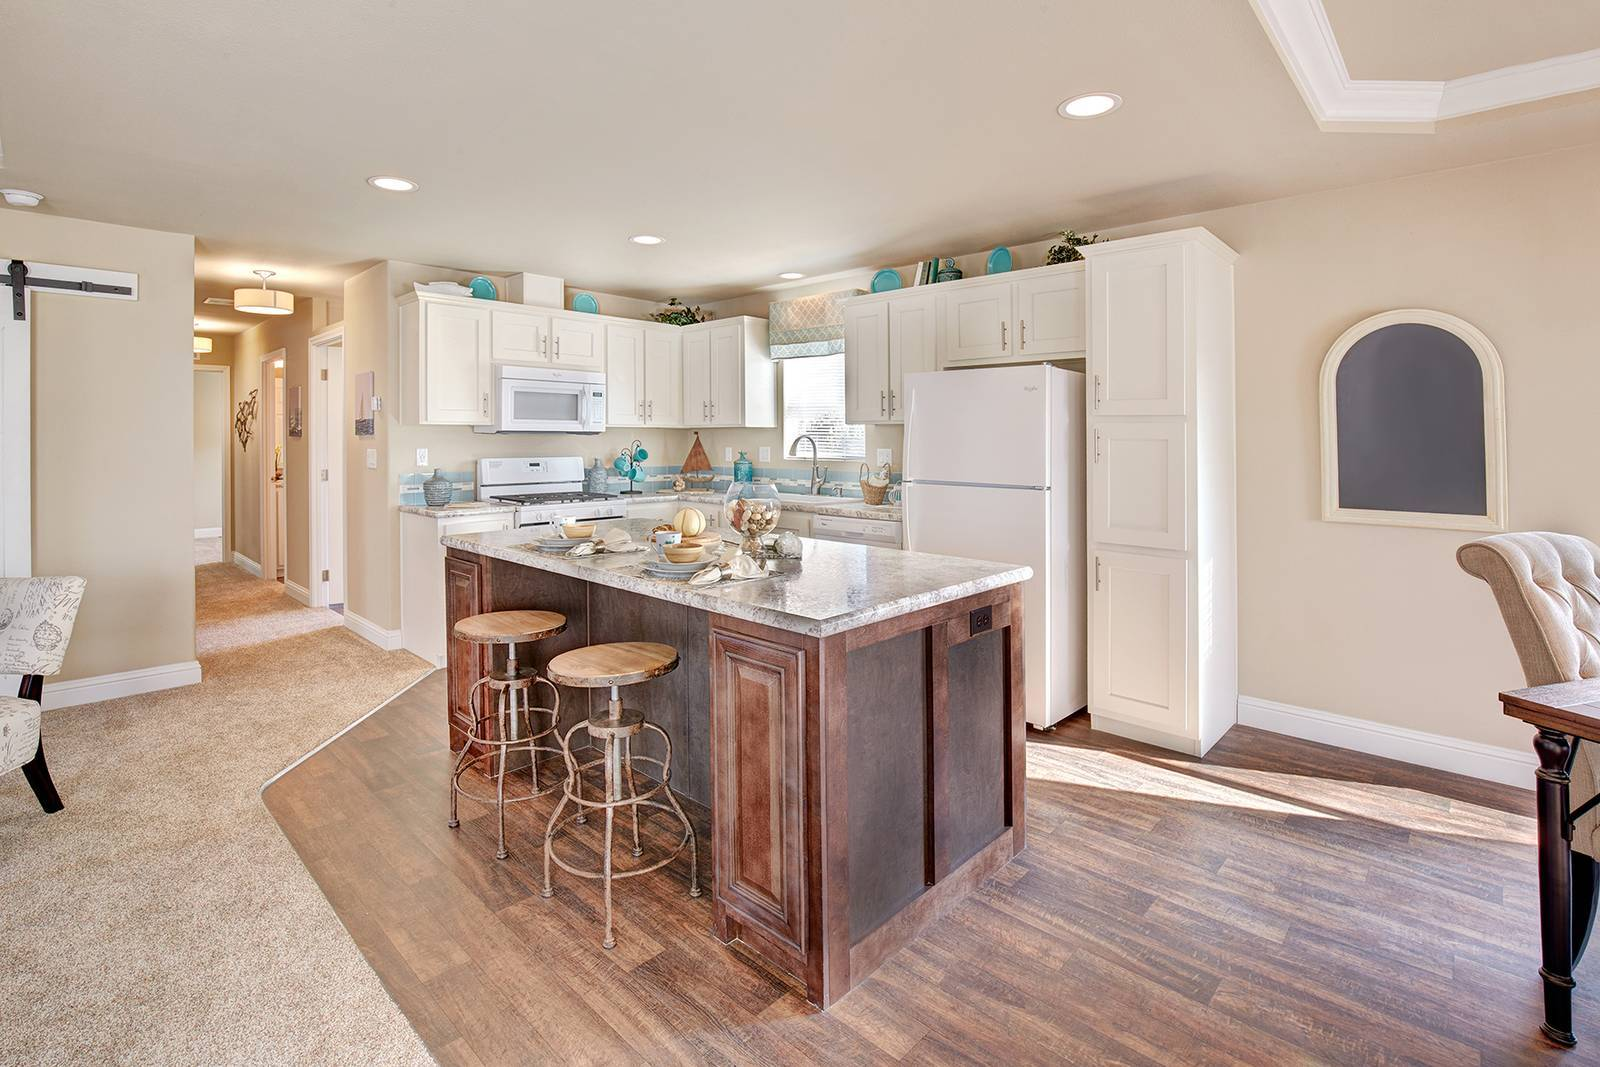 Kitchen featured in The Eagle By Desert Green Properties in Las Vegas, NV